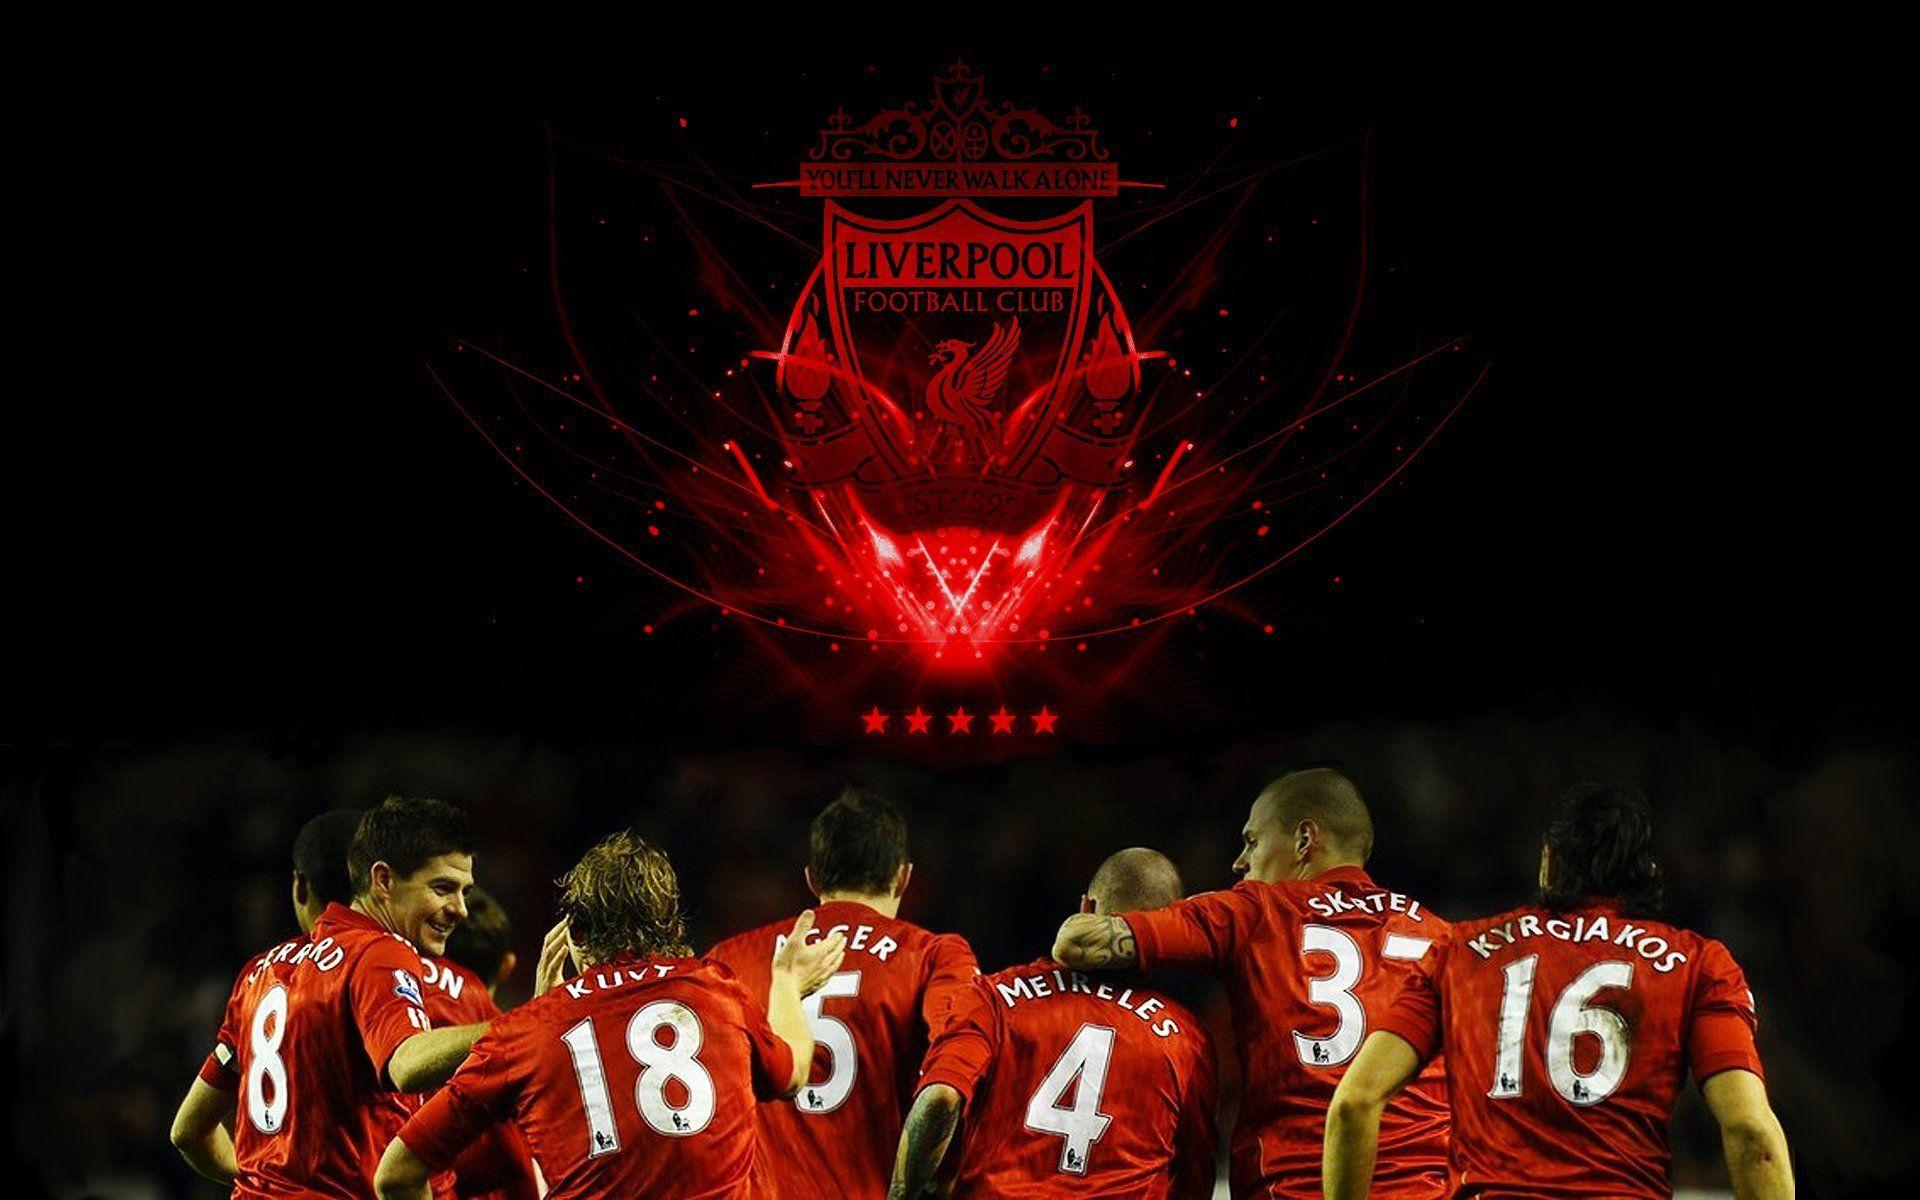 liverpool wallpapers for pc - photo #32